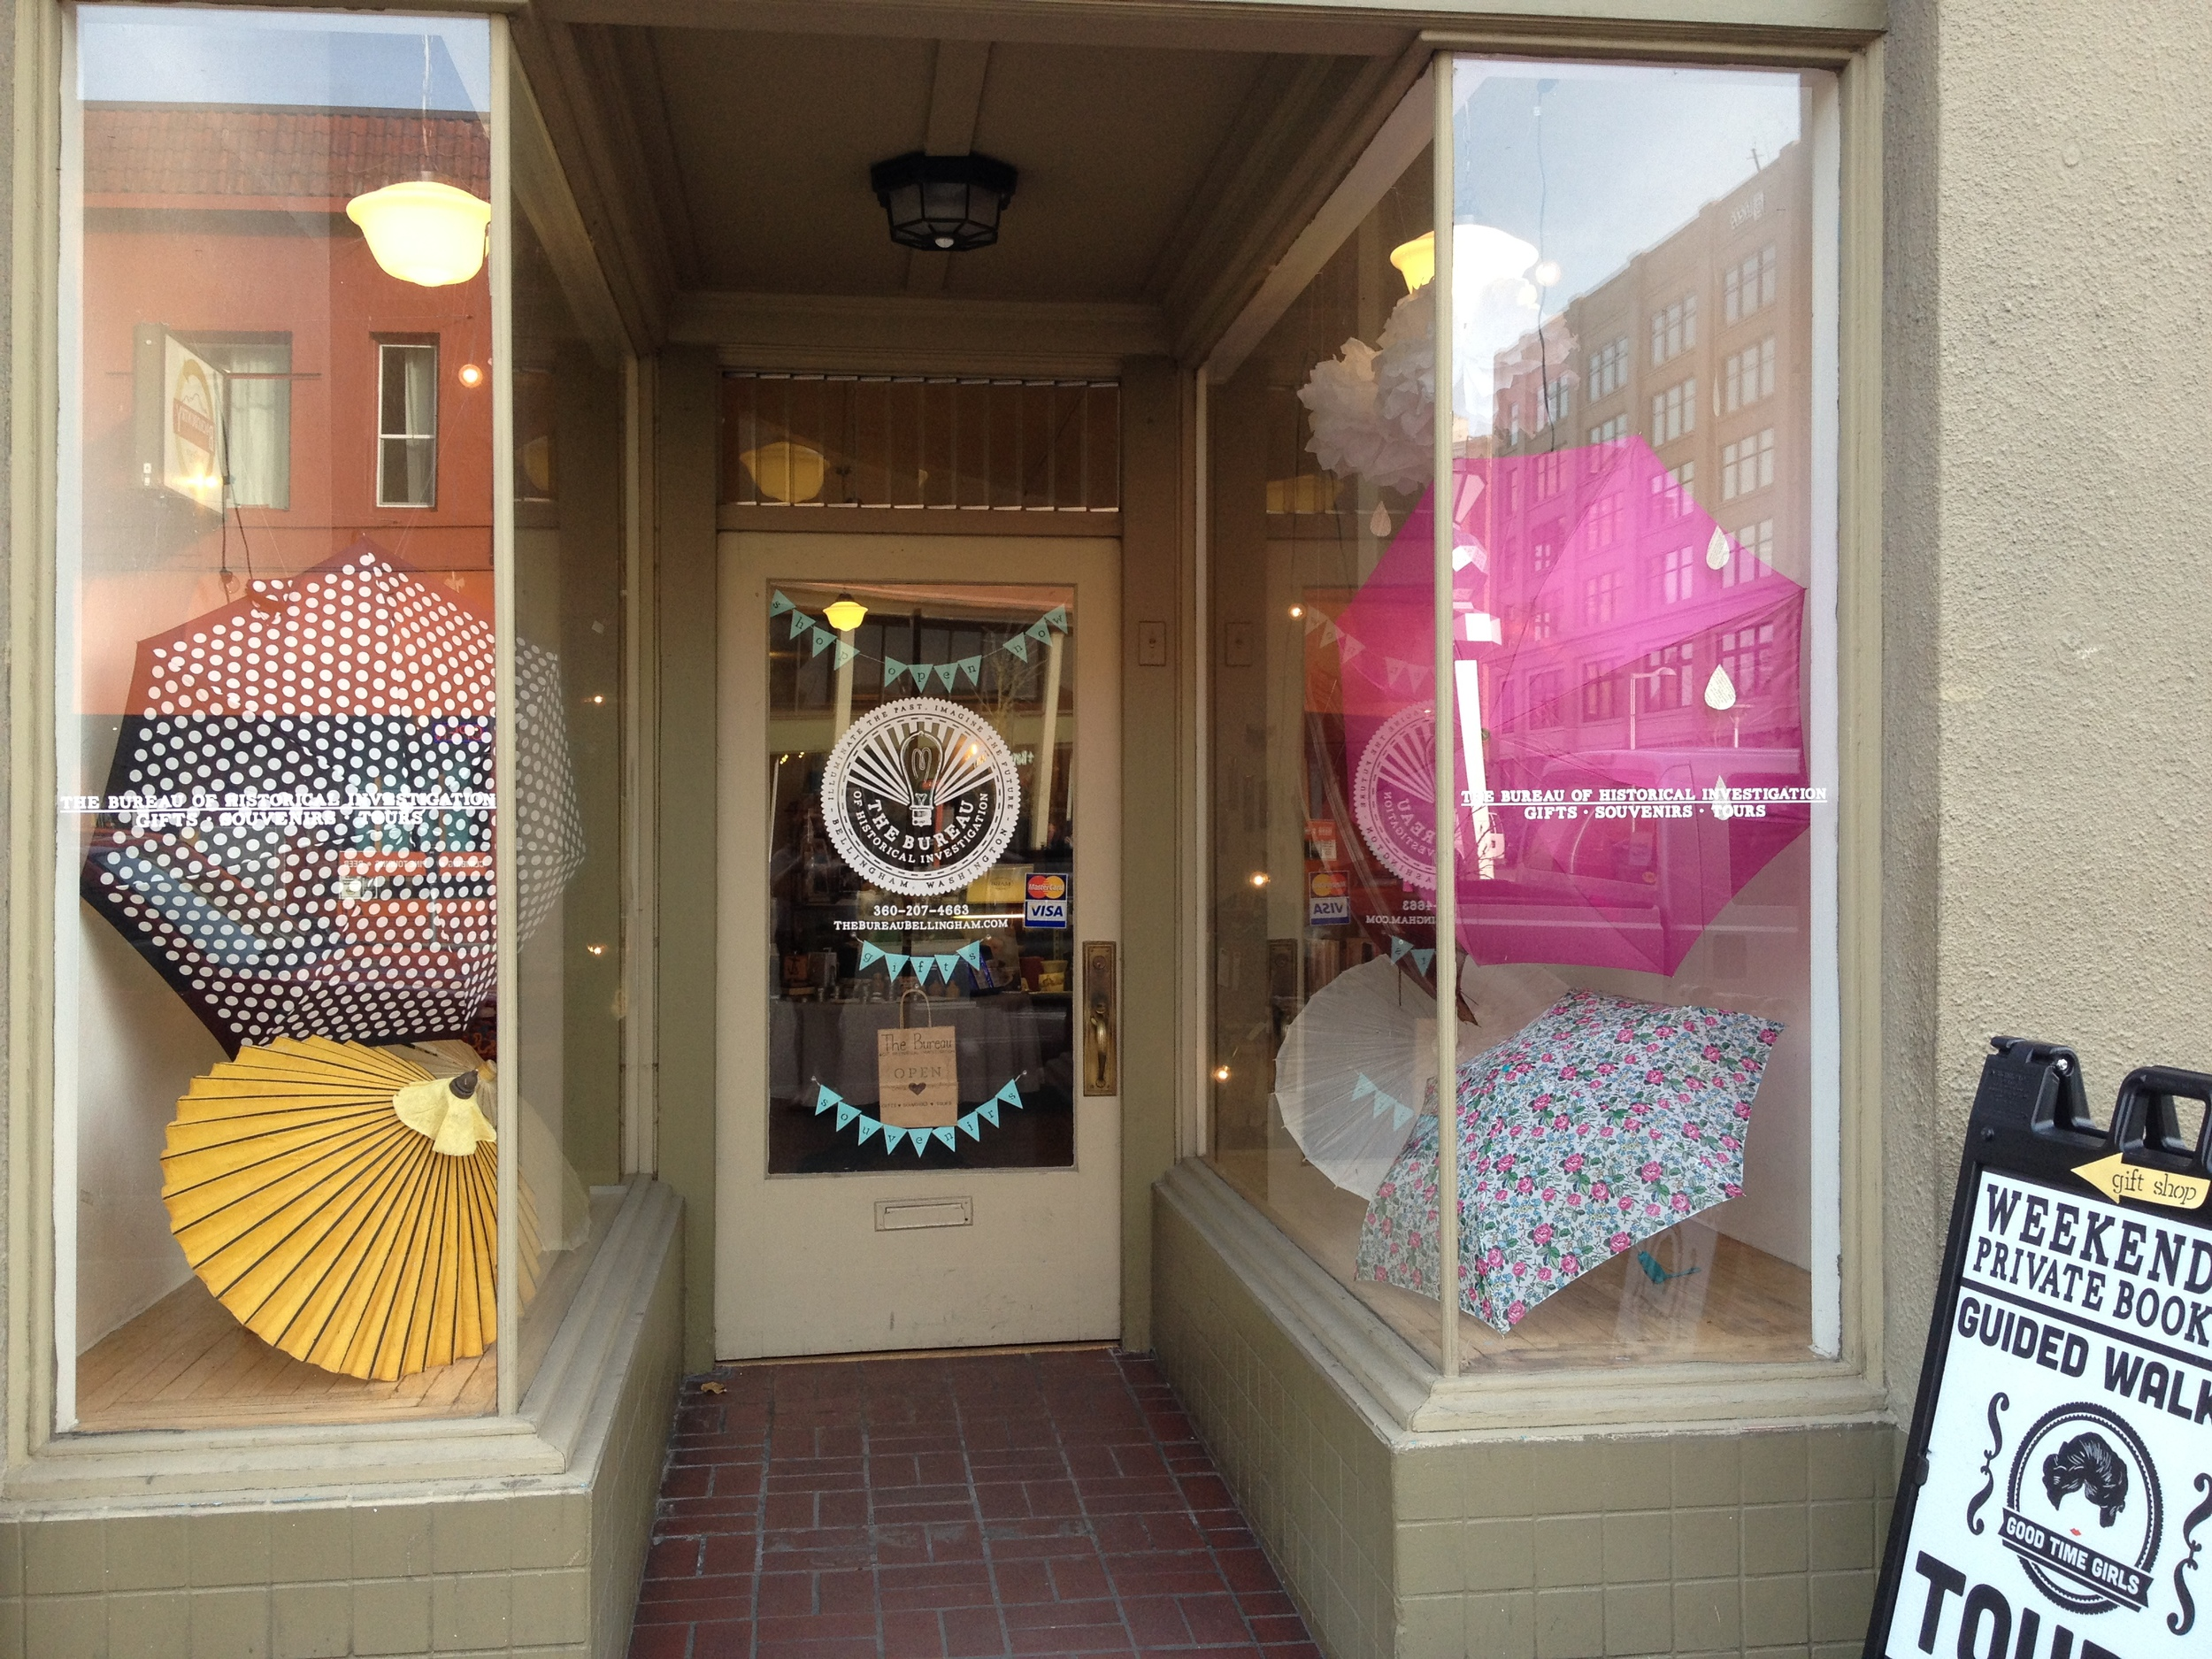 Our little shop at 217 W. Holly, in downtown Bellingham, Washington!